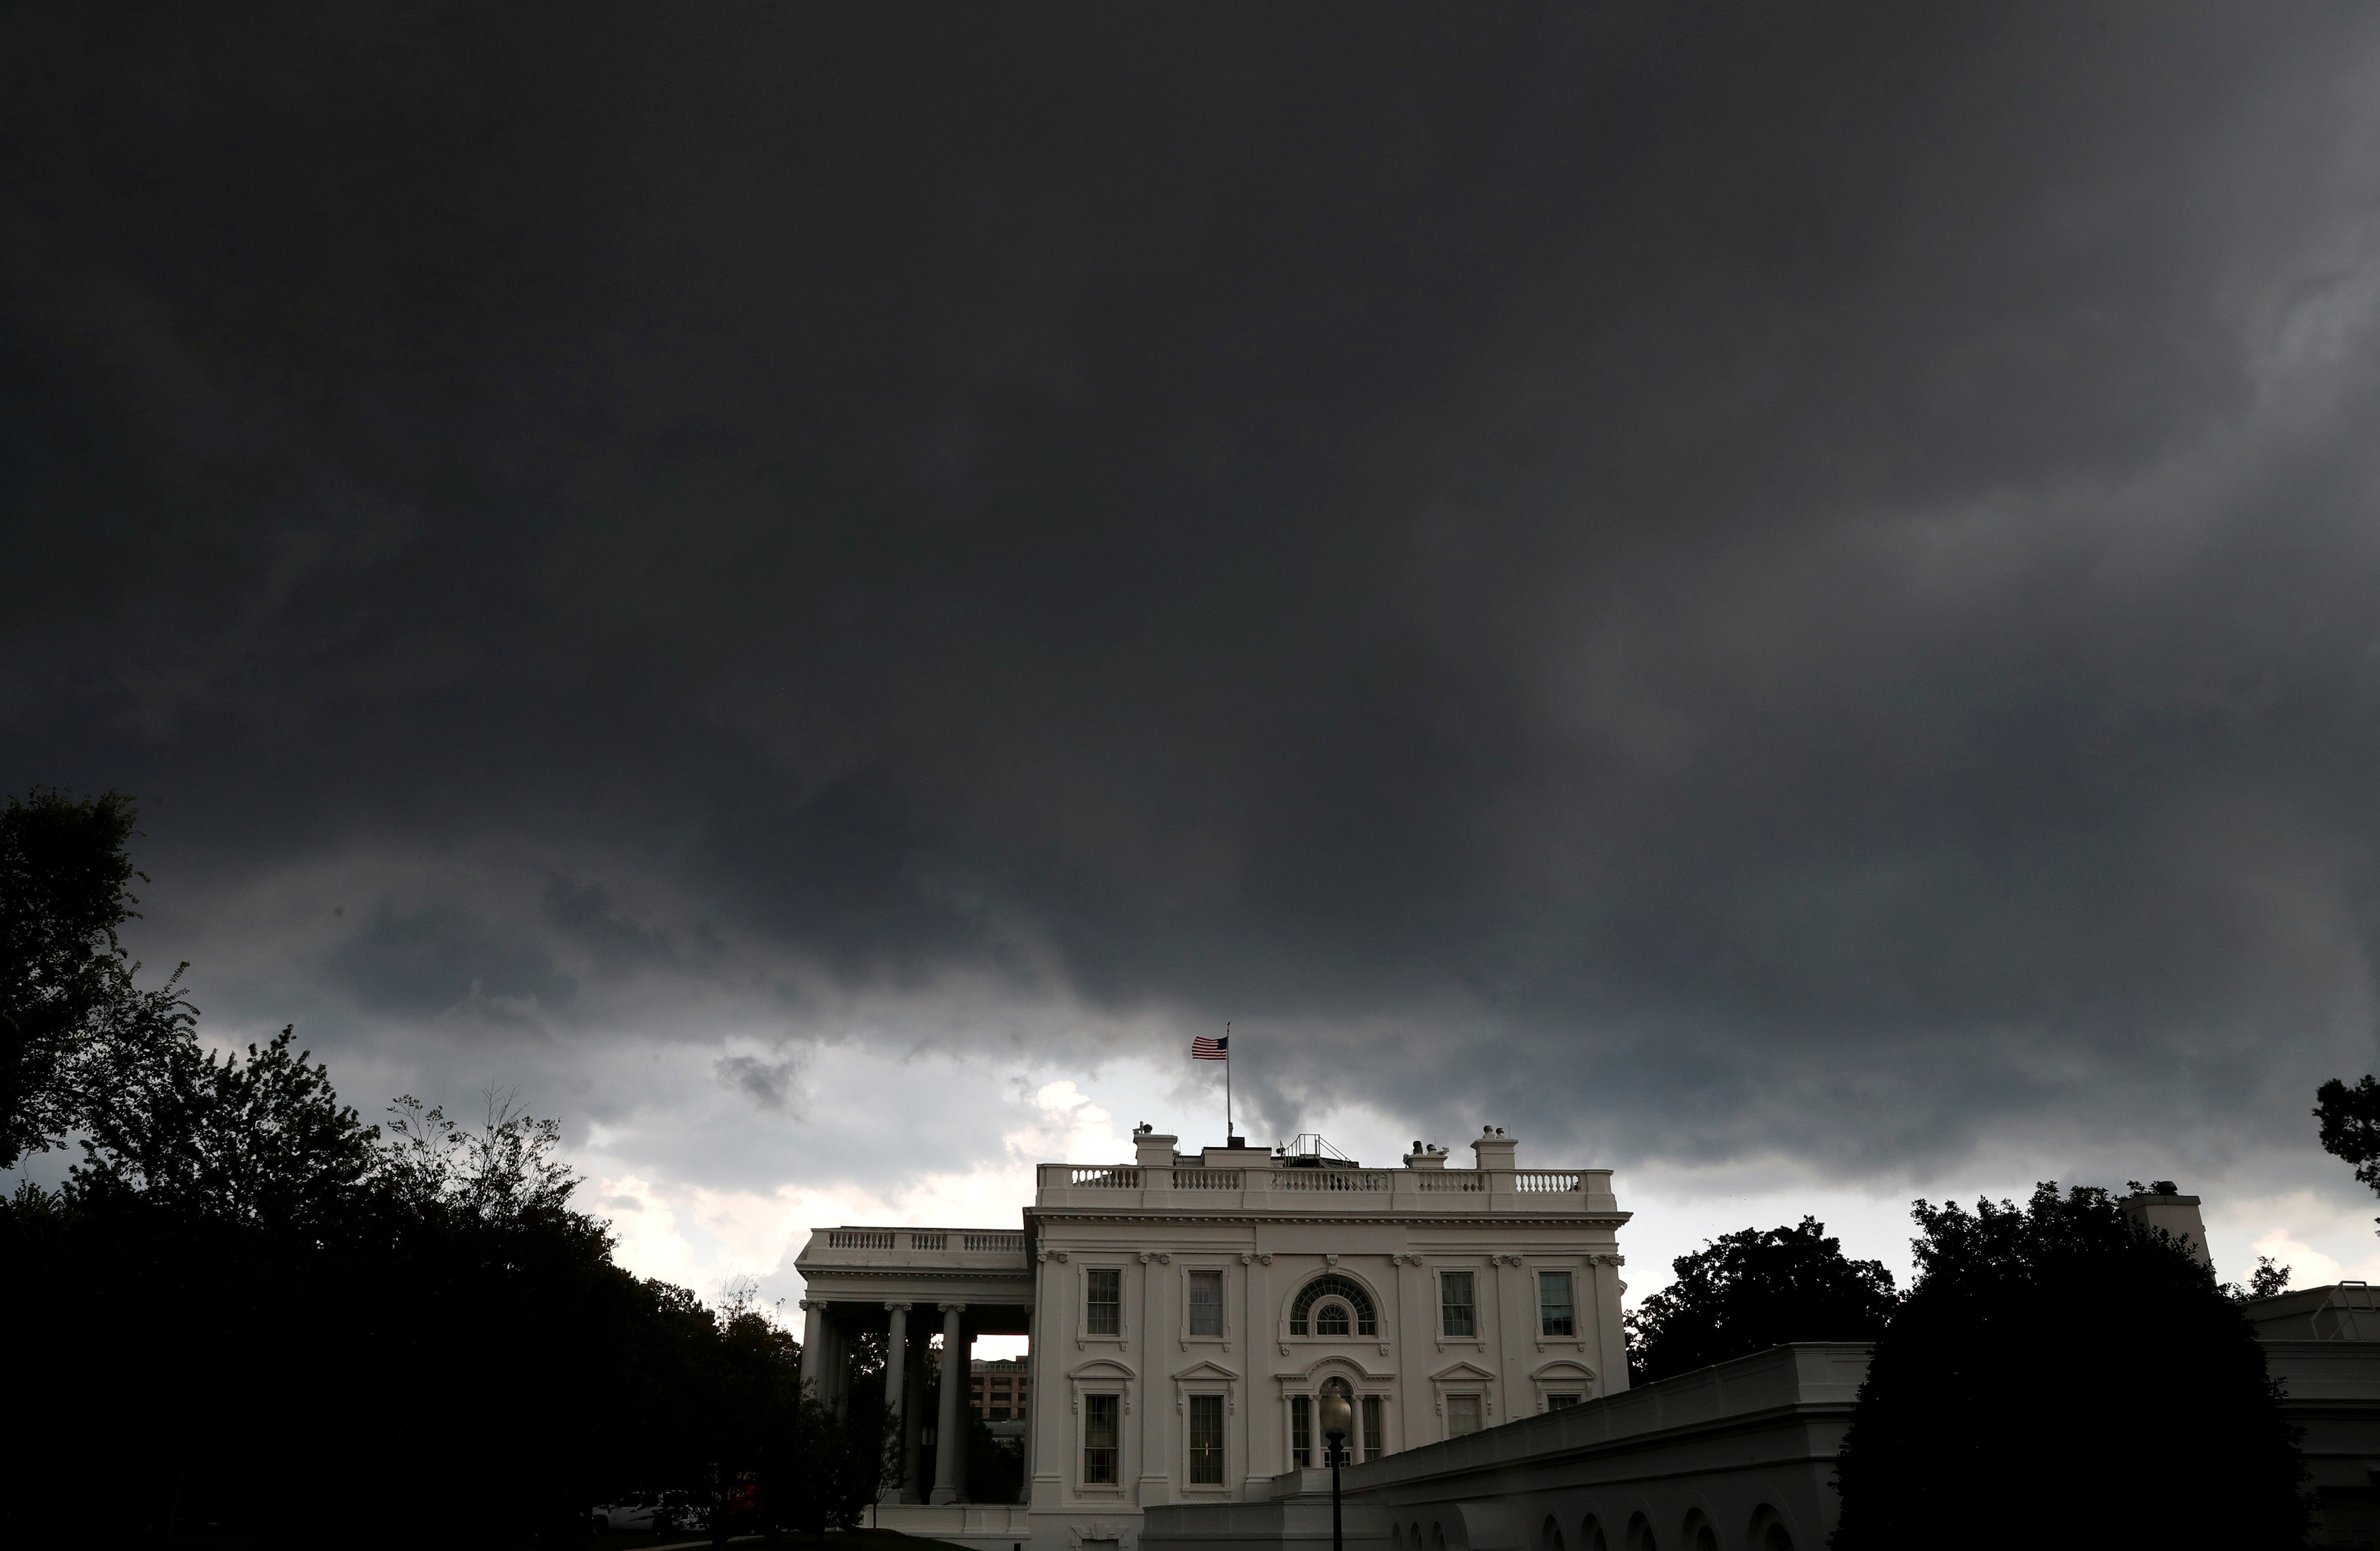 Storm clouds gather over the White House in Washington, D.C.